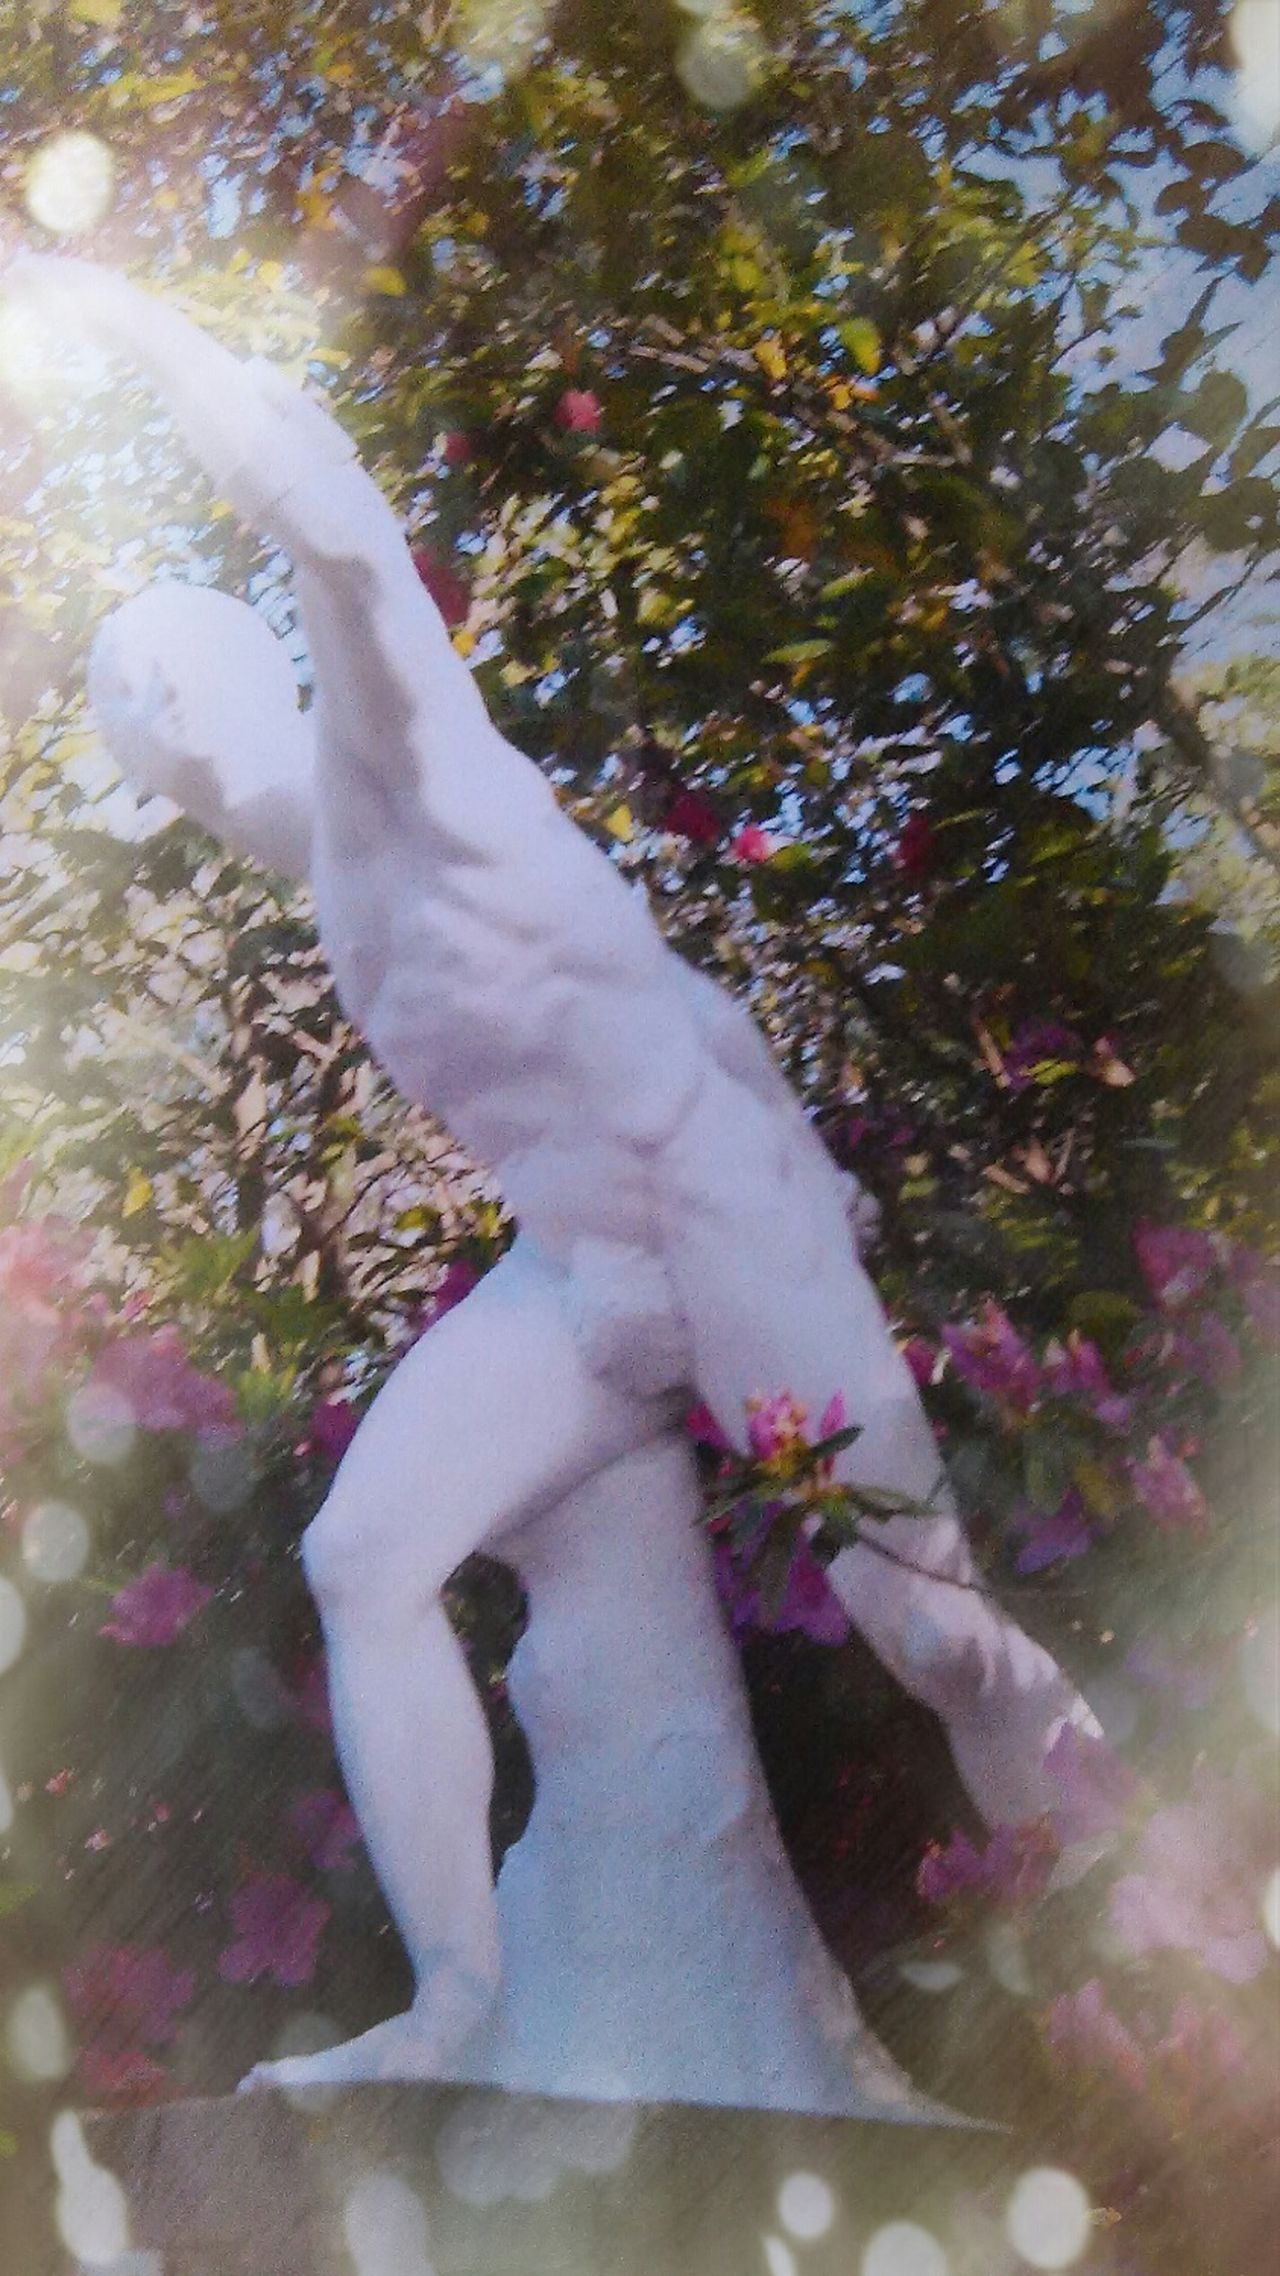 Wetumpka Alabama Jasmine Hill Gardens Javalin Thrower Stone Statue Enjoying Life Azelia Gardens